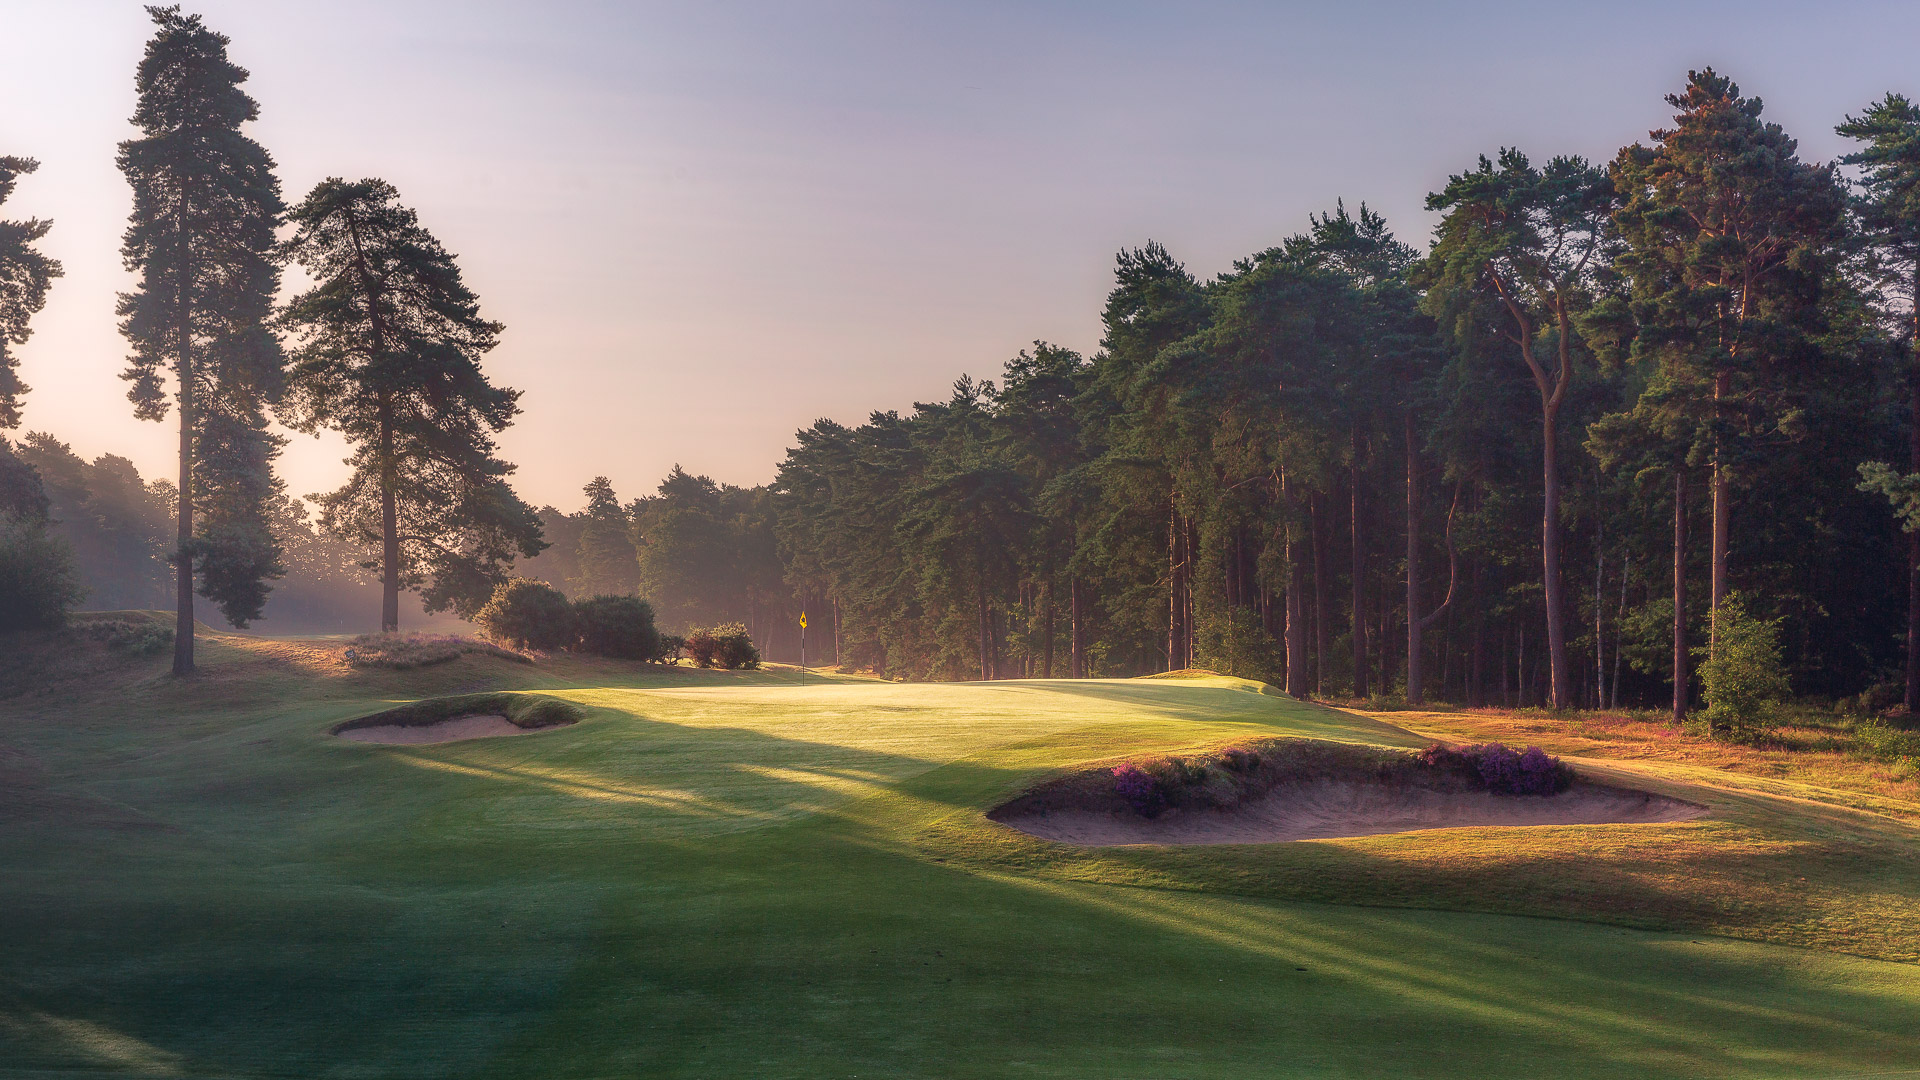 12th-Hole-St-Georges-Hill-Golf-Club-2302-Edit-2